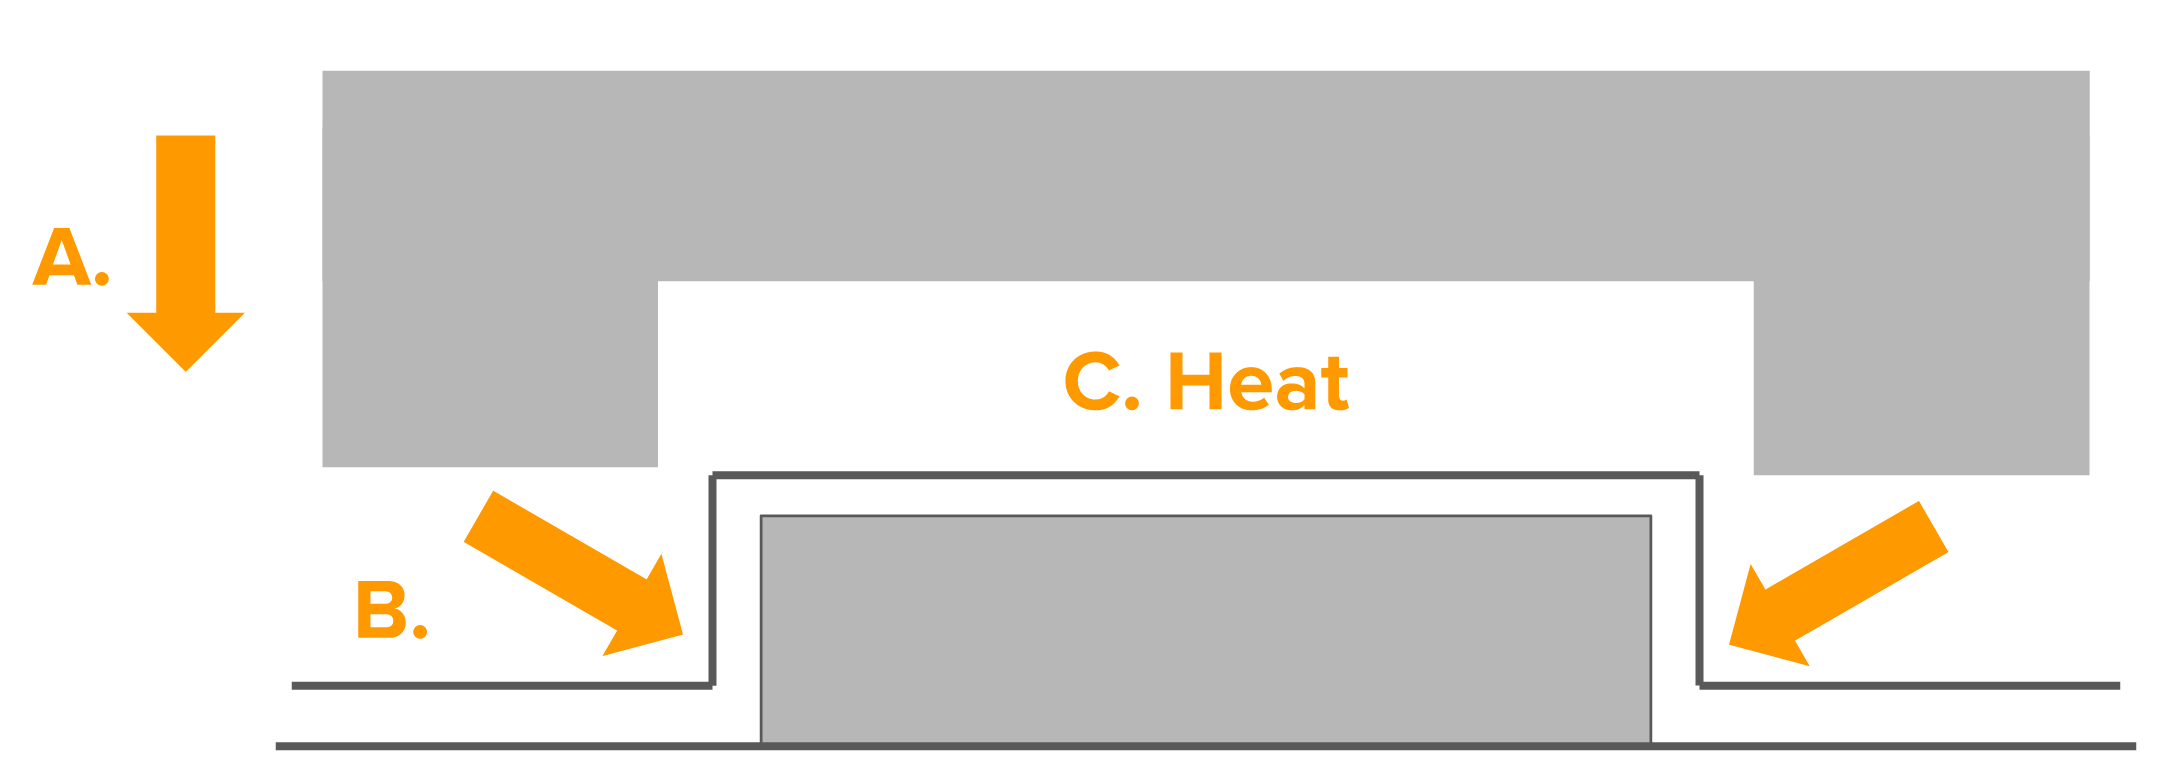 In this diagram, A represents pressure from the reverse mold face, B represents pressure from the plastic being applied to the form, and C represents heat from the plastic itself.